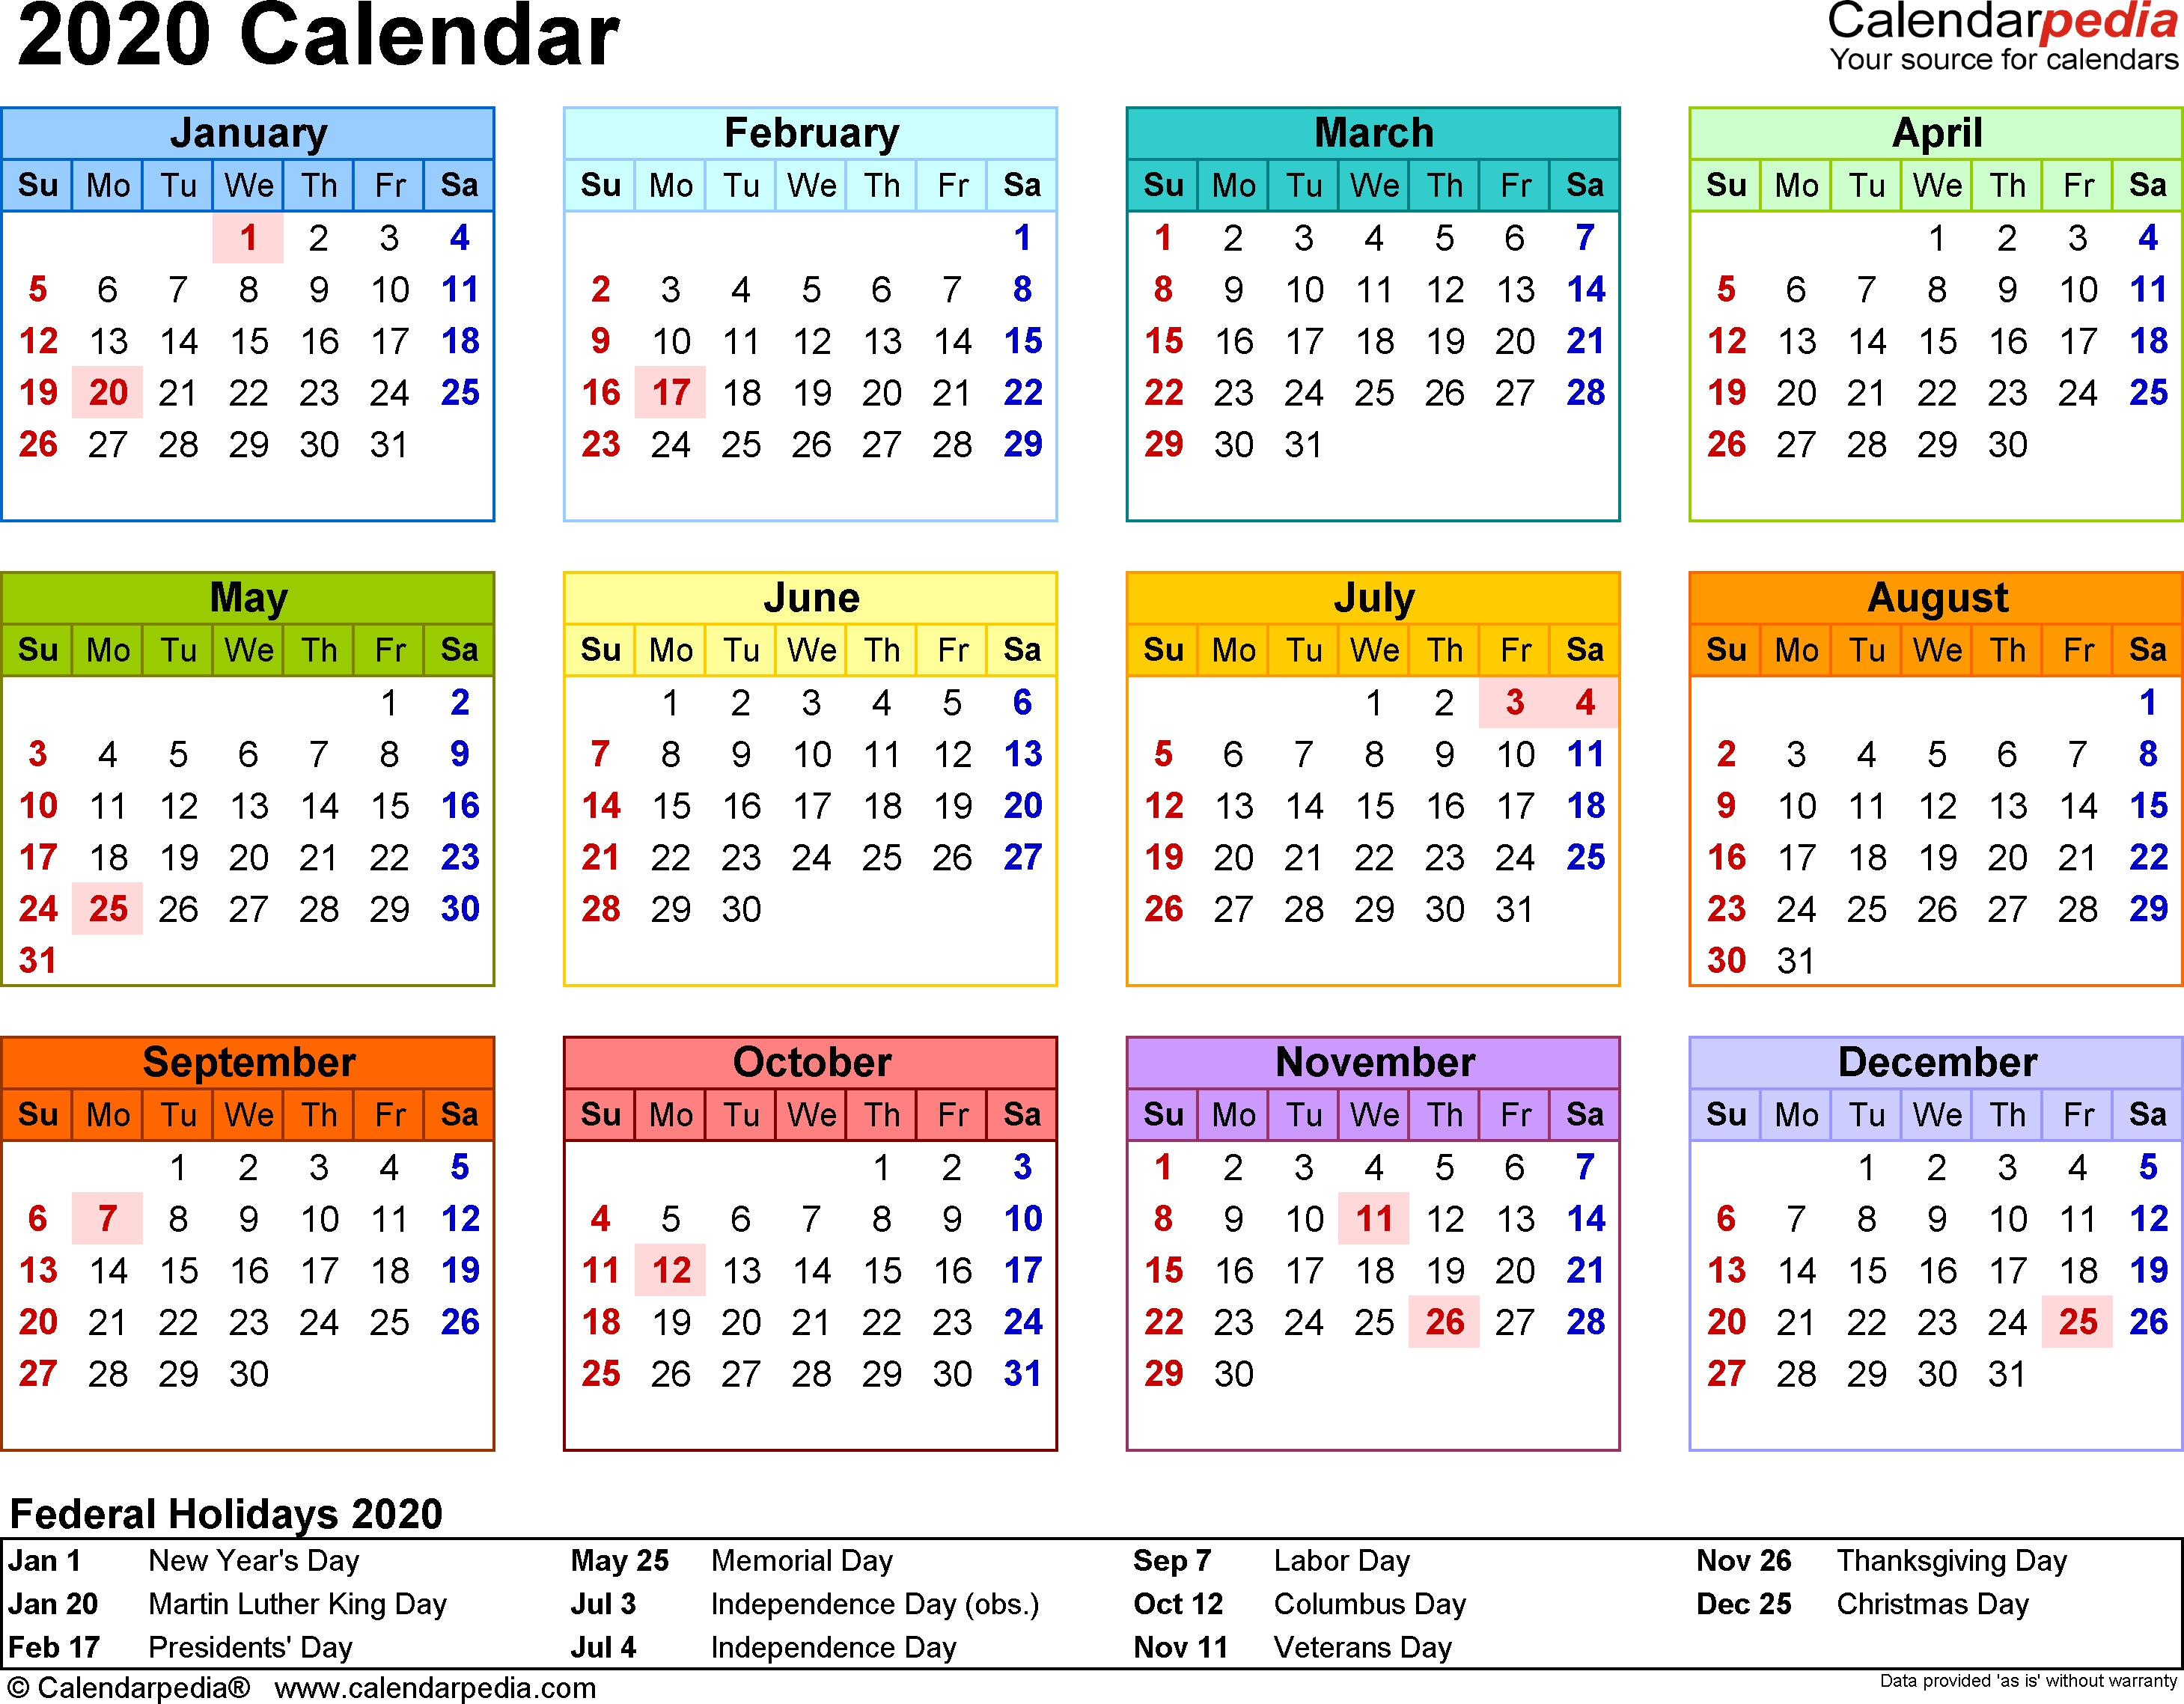 2020 Calendar Pdf - 17 Free Printable Calendar Templates  Year At A Glance Calendars Printable